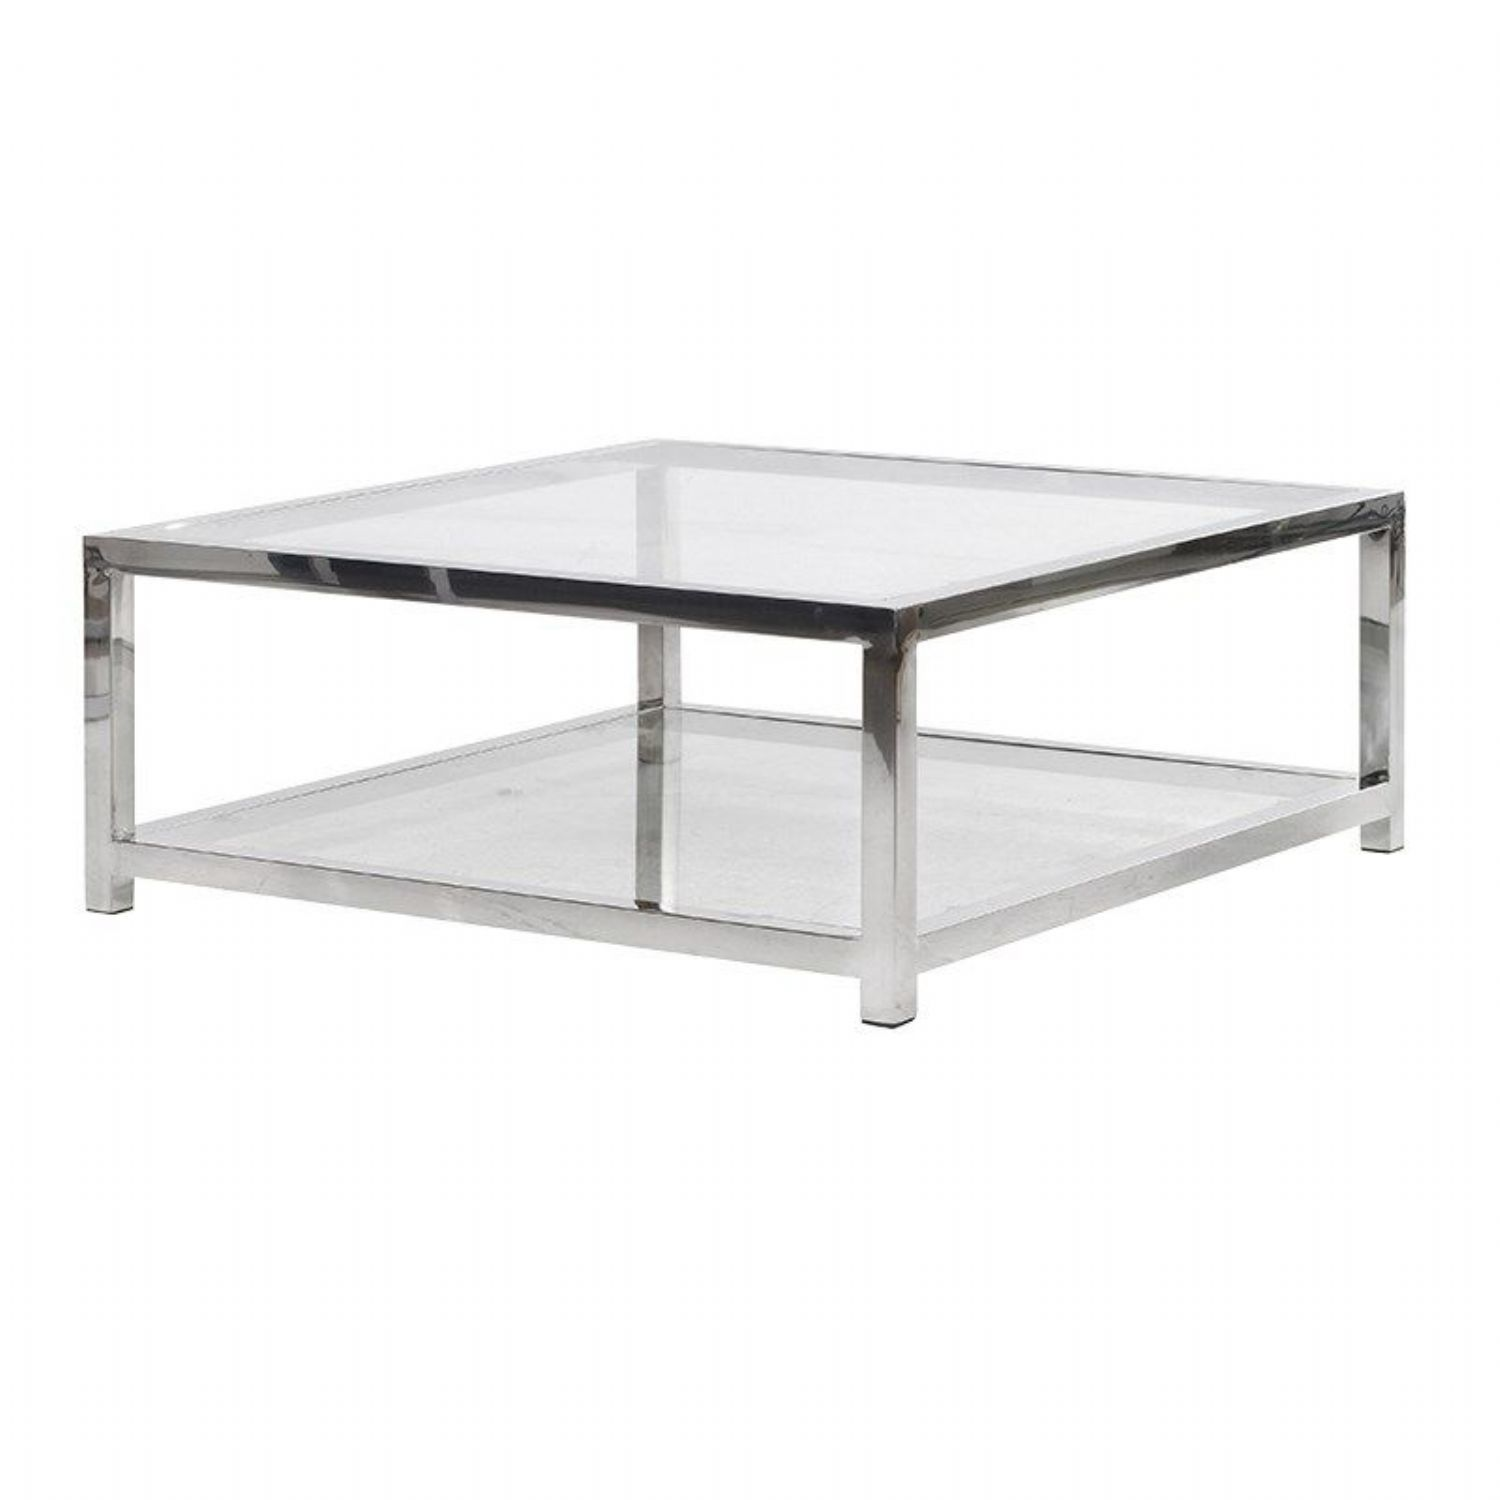 Terano Contemporary Metal and Glass Top Square Coffee Table Bath